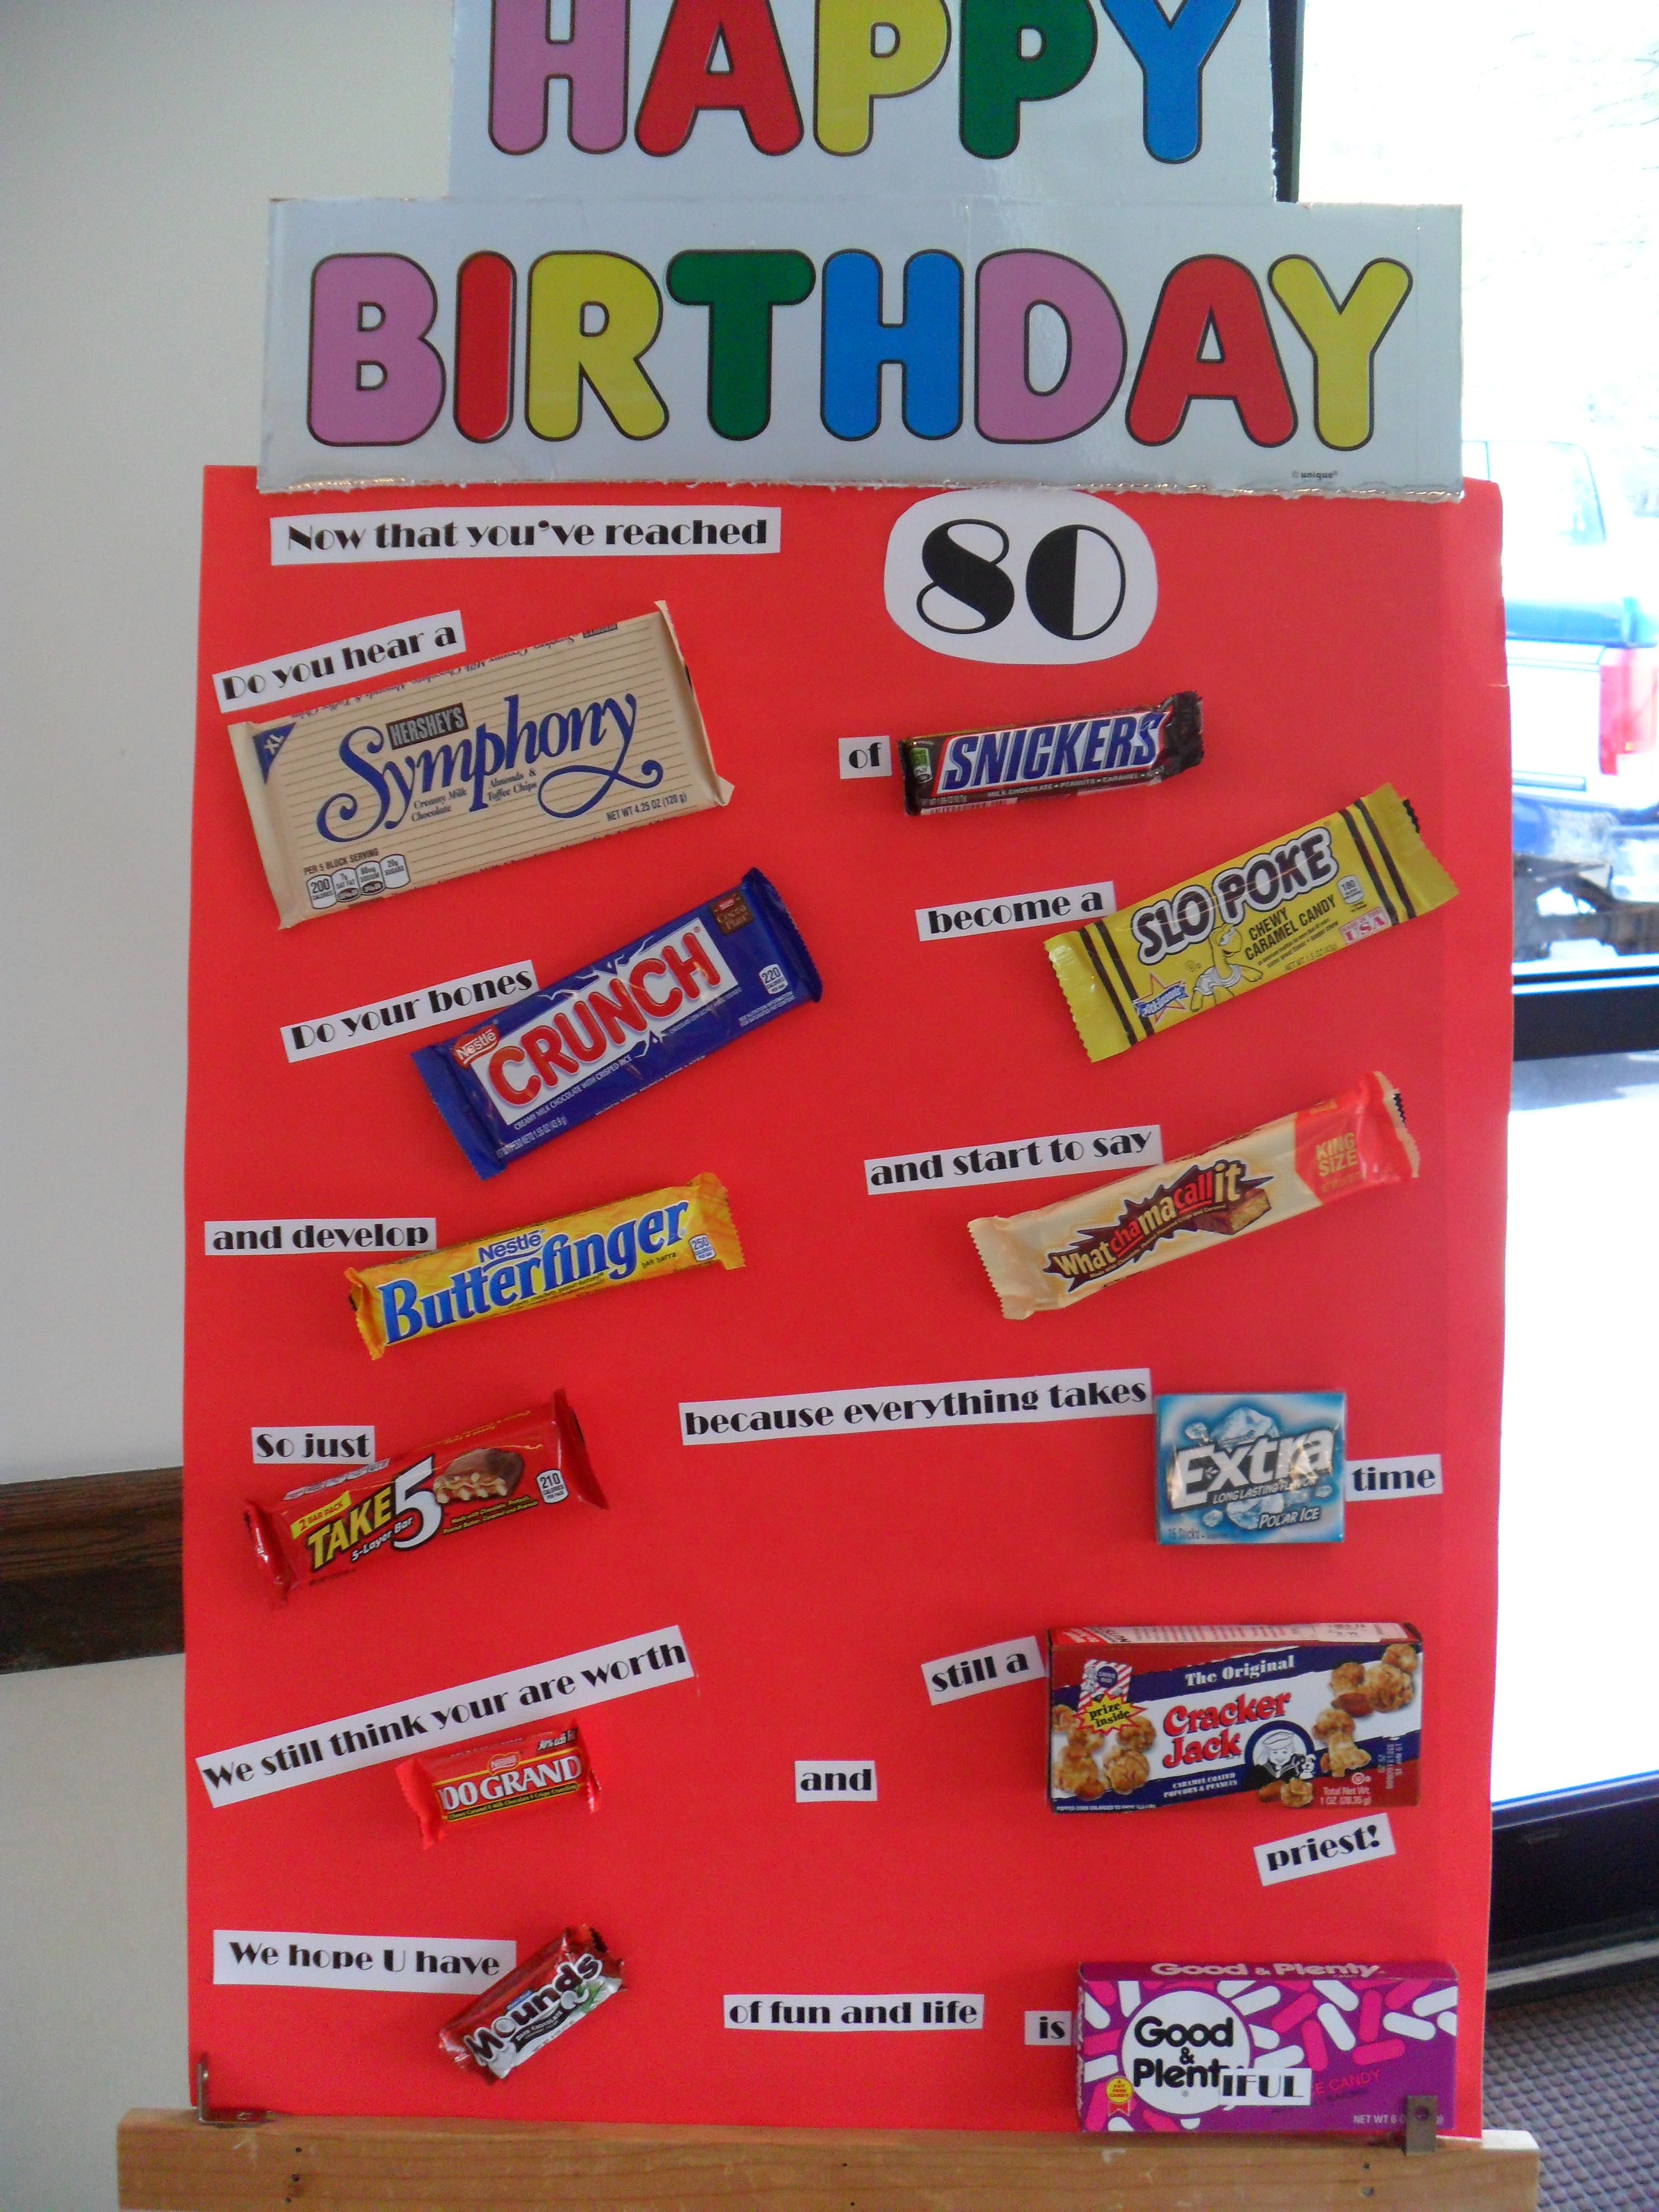 birthday poster with candy ; 8a7f0a850d442f0ad784271cc3d6f8a2